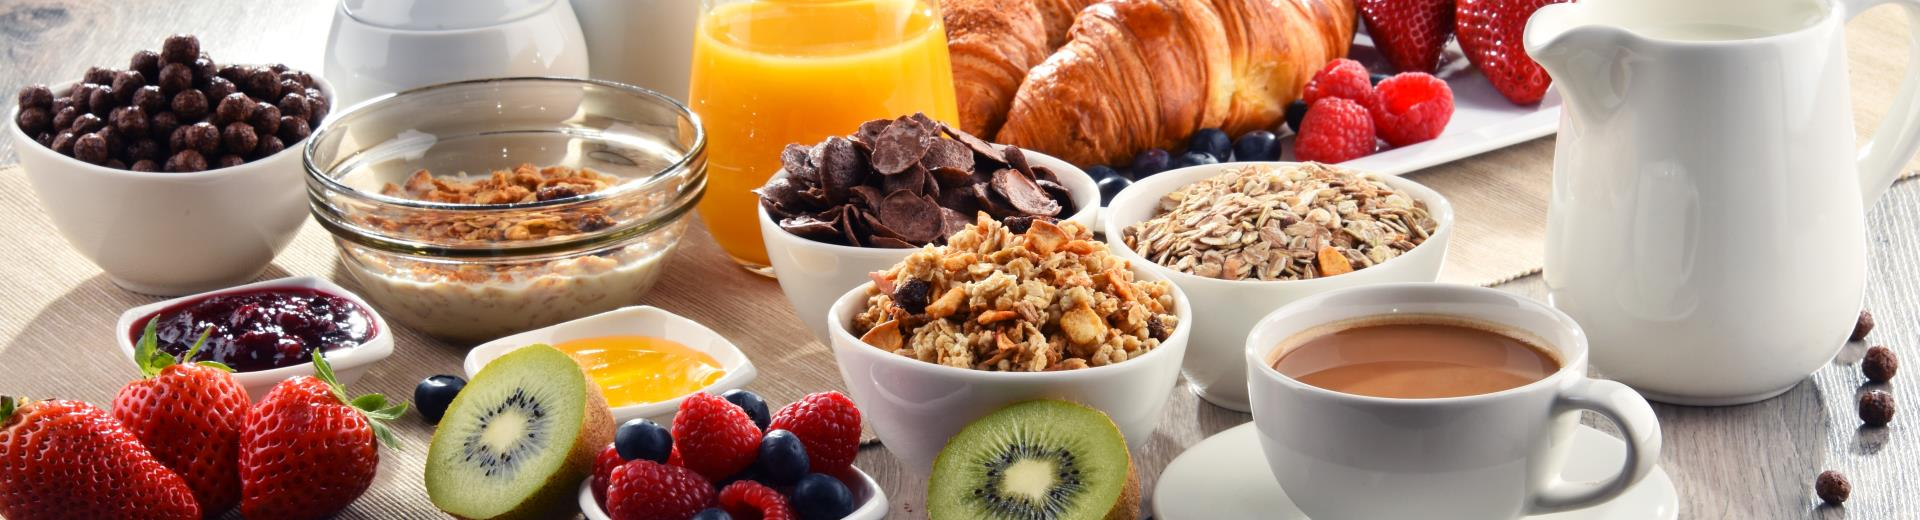 For members of Best Western Rewards ® Platinum, Diamond and Diamond Select breakfast is free!